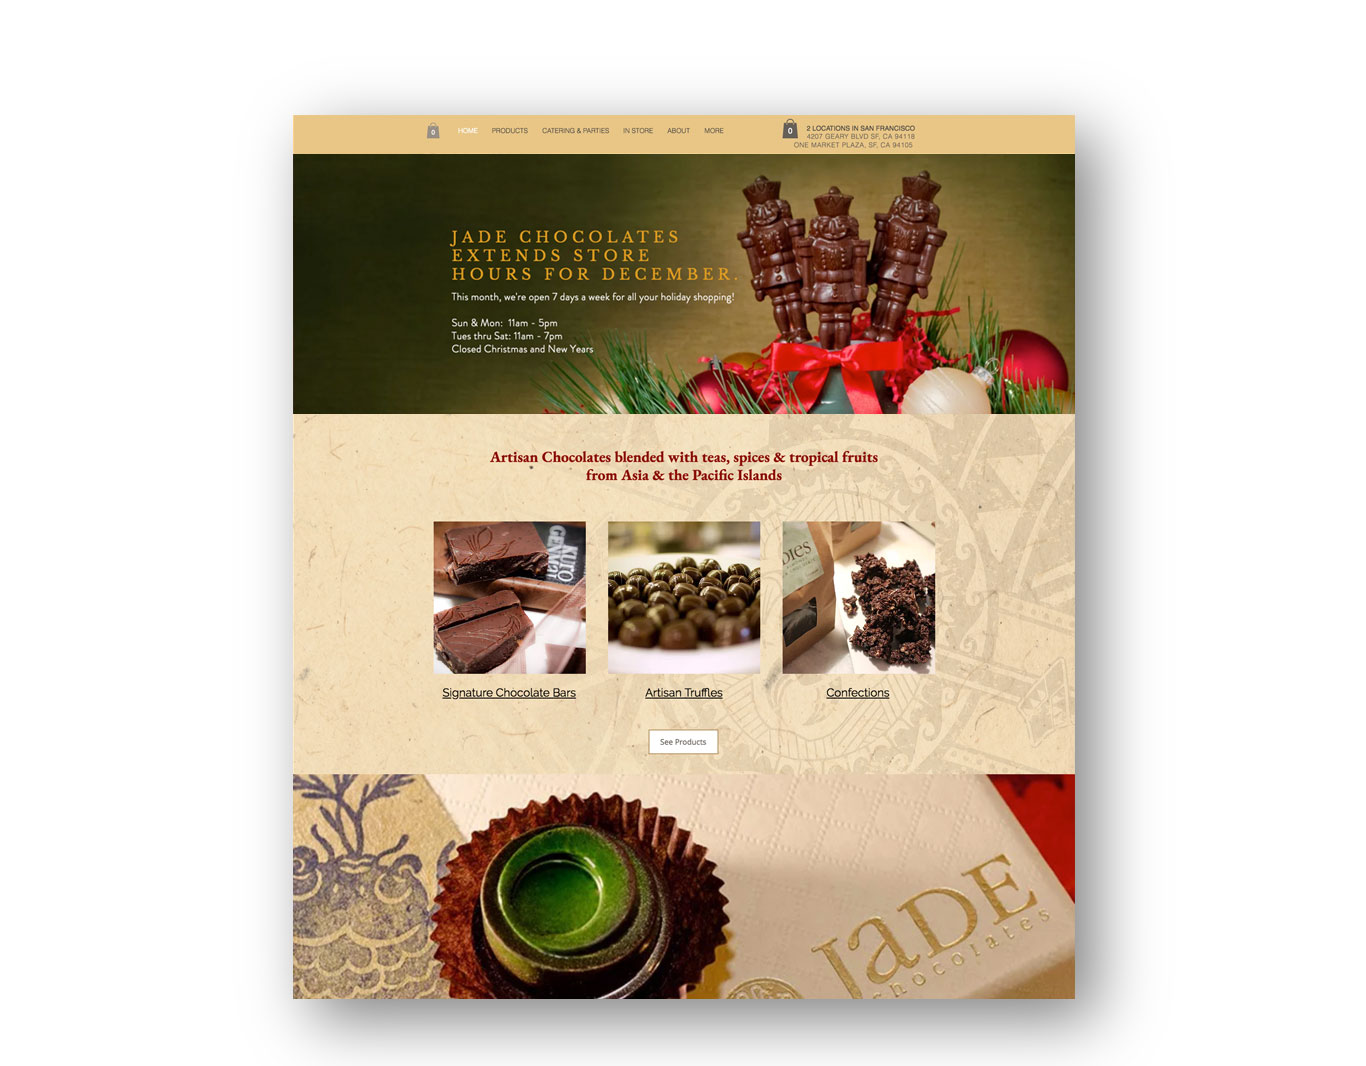 Digital Promotion- Jade Chocolates